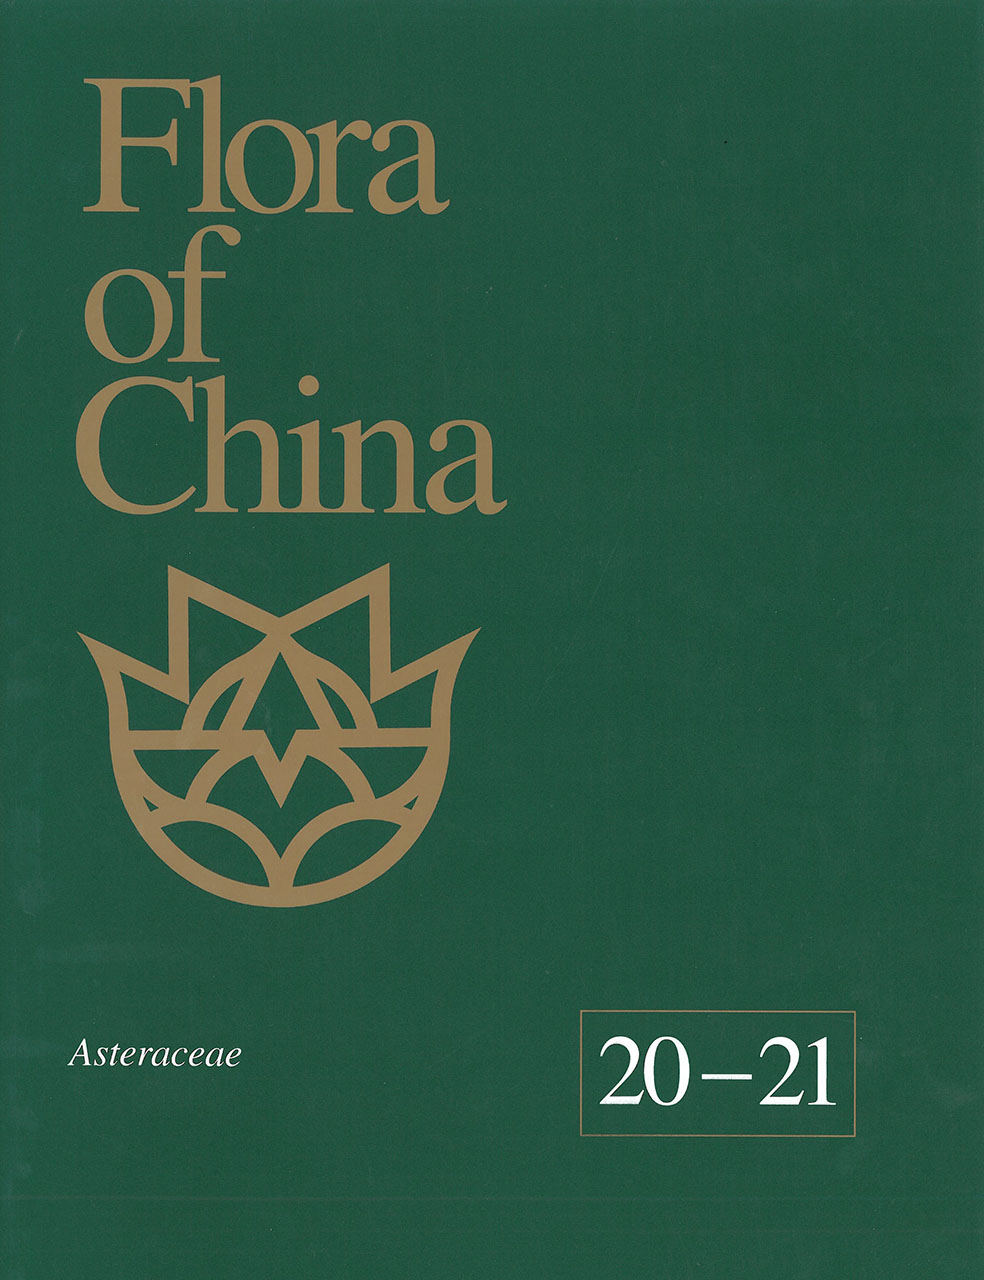 Flora of China, Volume 20-21